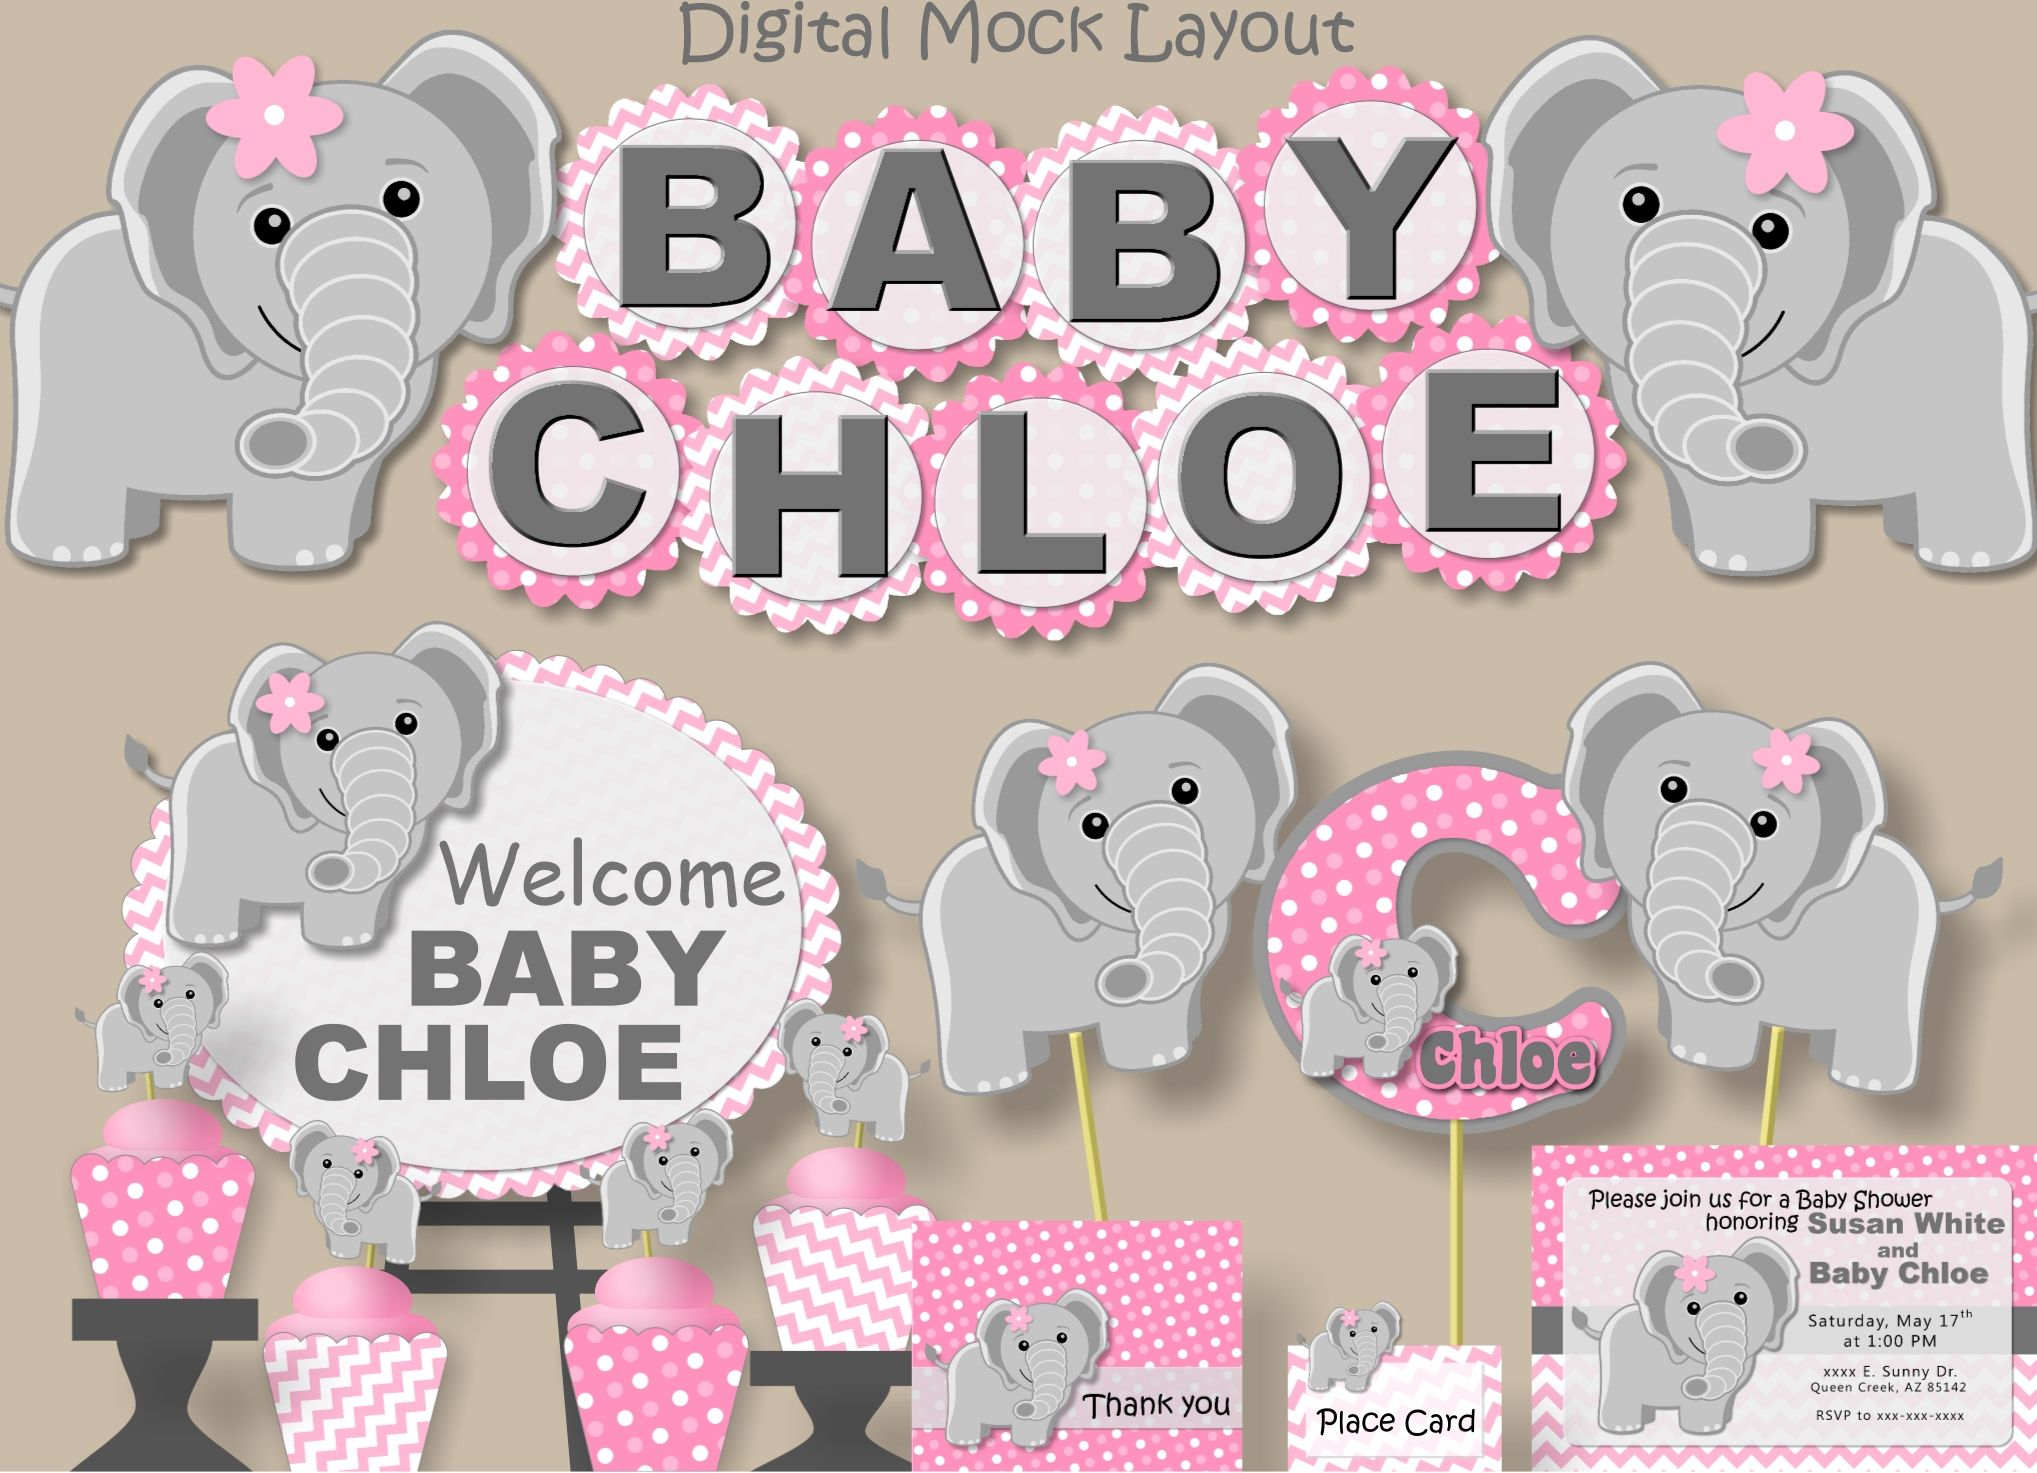 Pink Elephant Baby Shower Decorations For Girl Or 1st First Birthday Party,  Invitation, Banner, Favor Tag, Cupcake Topper, Invite, Printed